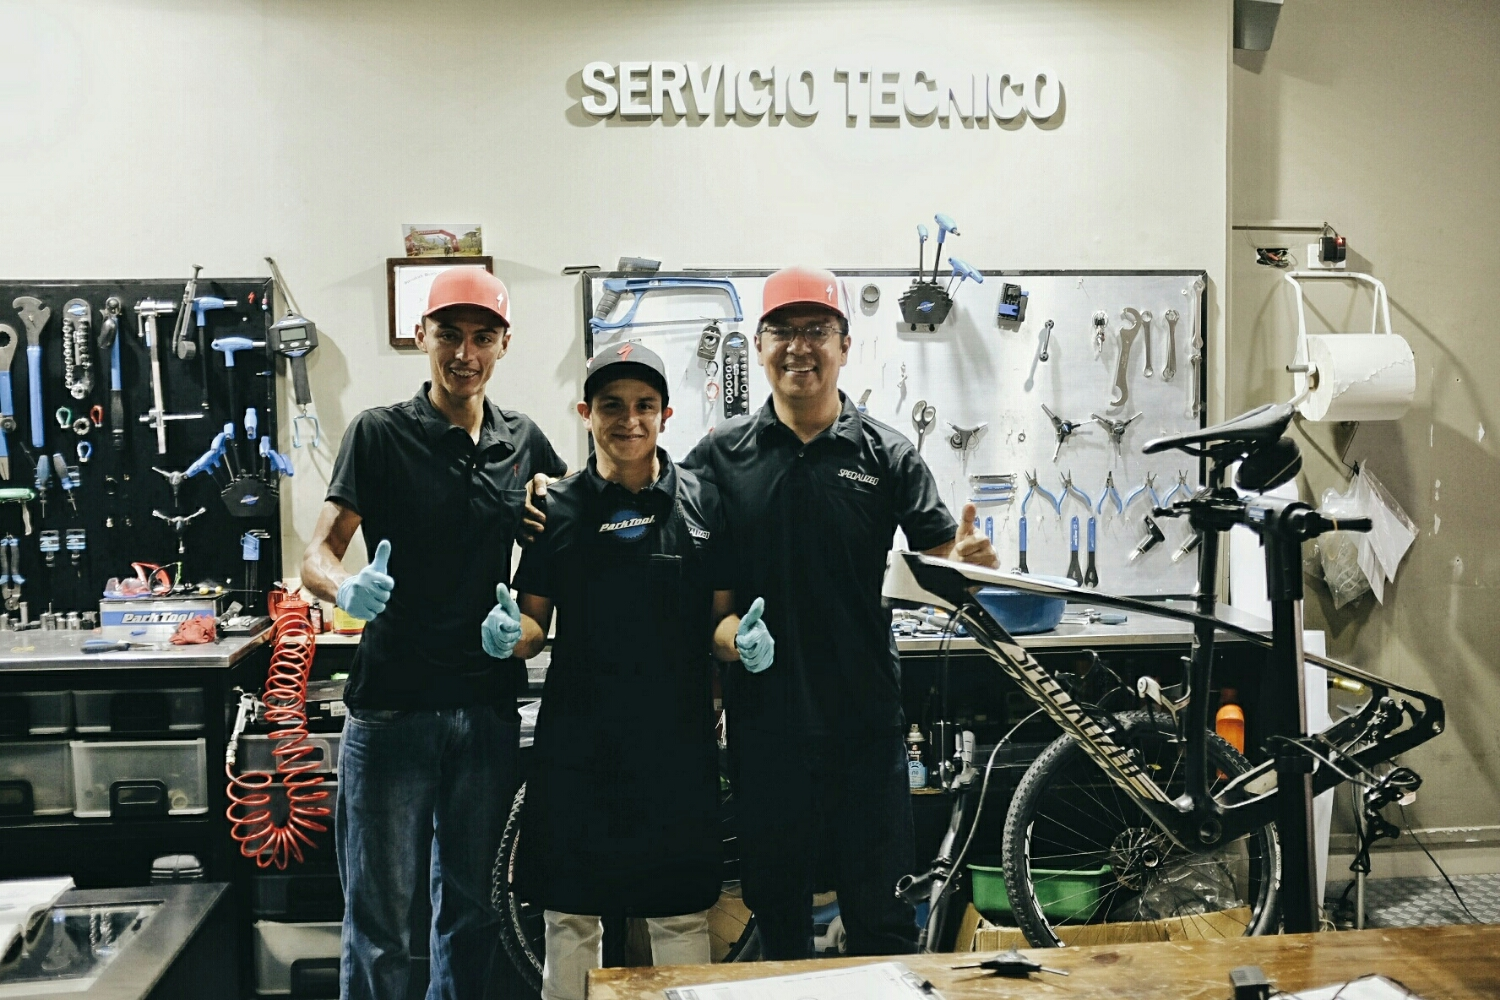 The friendly guys at Specialized Concept Store in Ibagué.